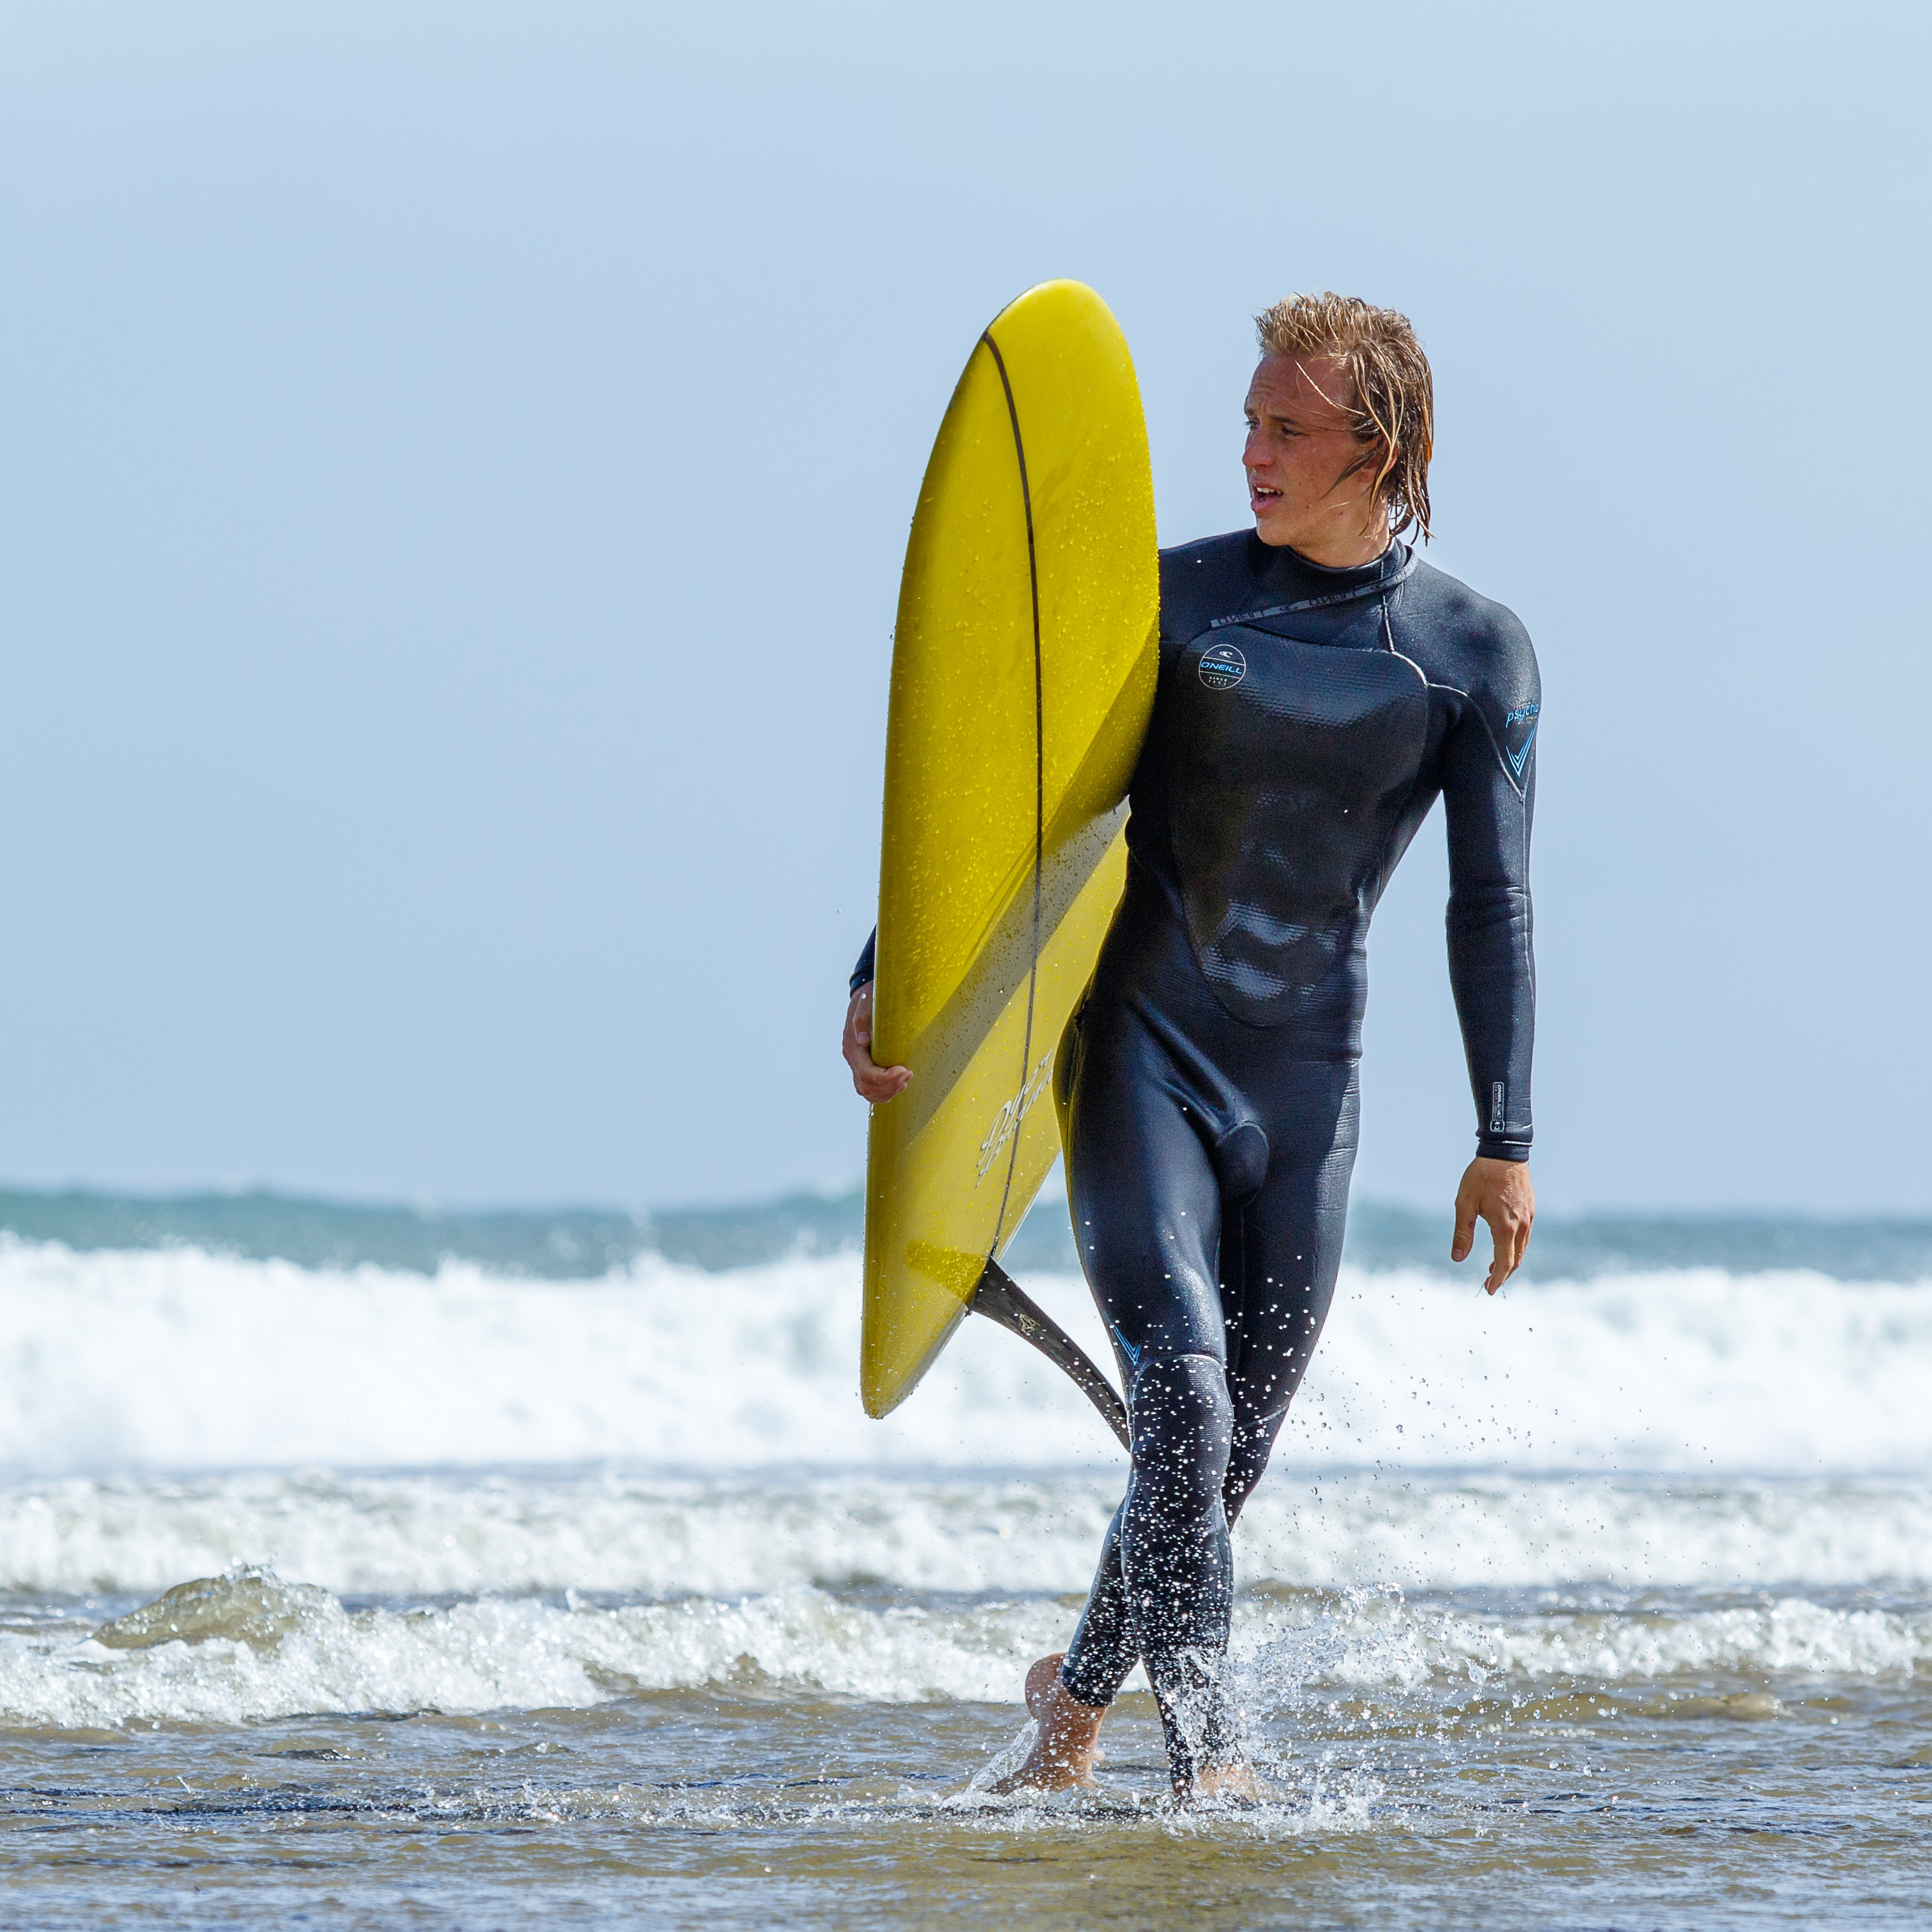 A male surfer with blonde hair, wearing a black wetsuit, carrying a yellow surfboard in the shallow sea water at Malibu